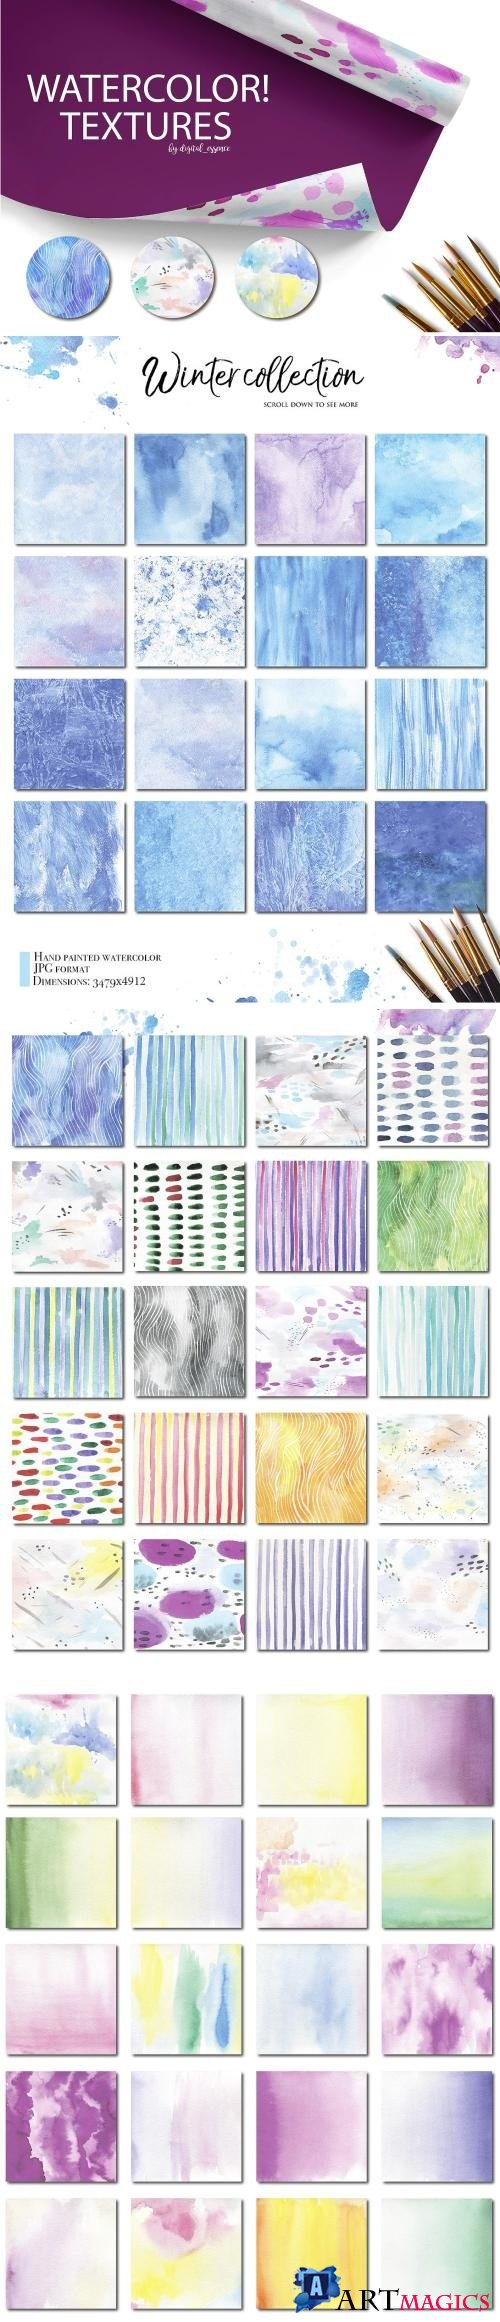 Watercolor textures kit - 2117917